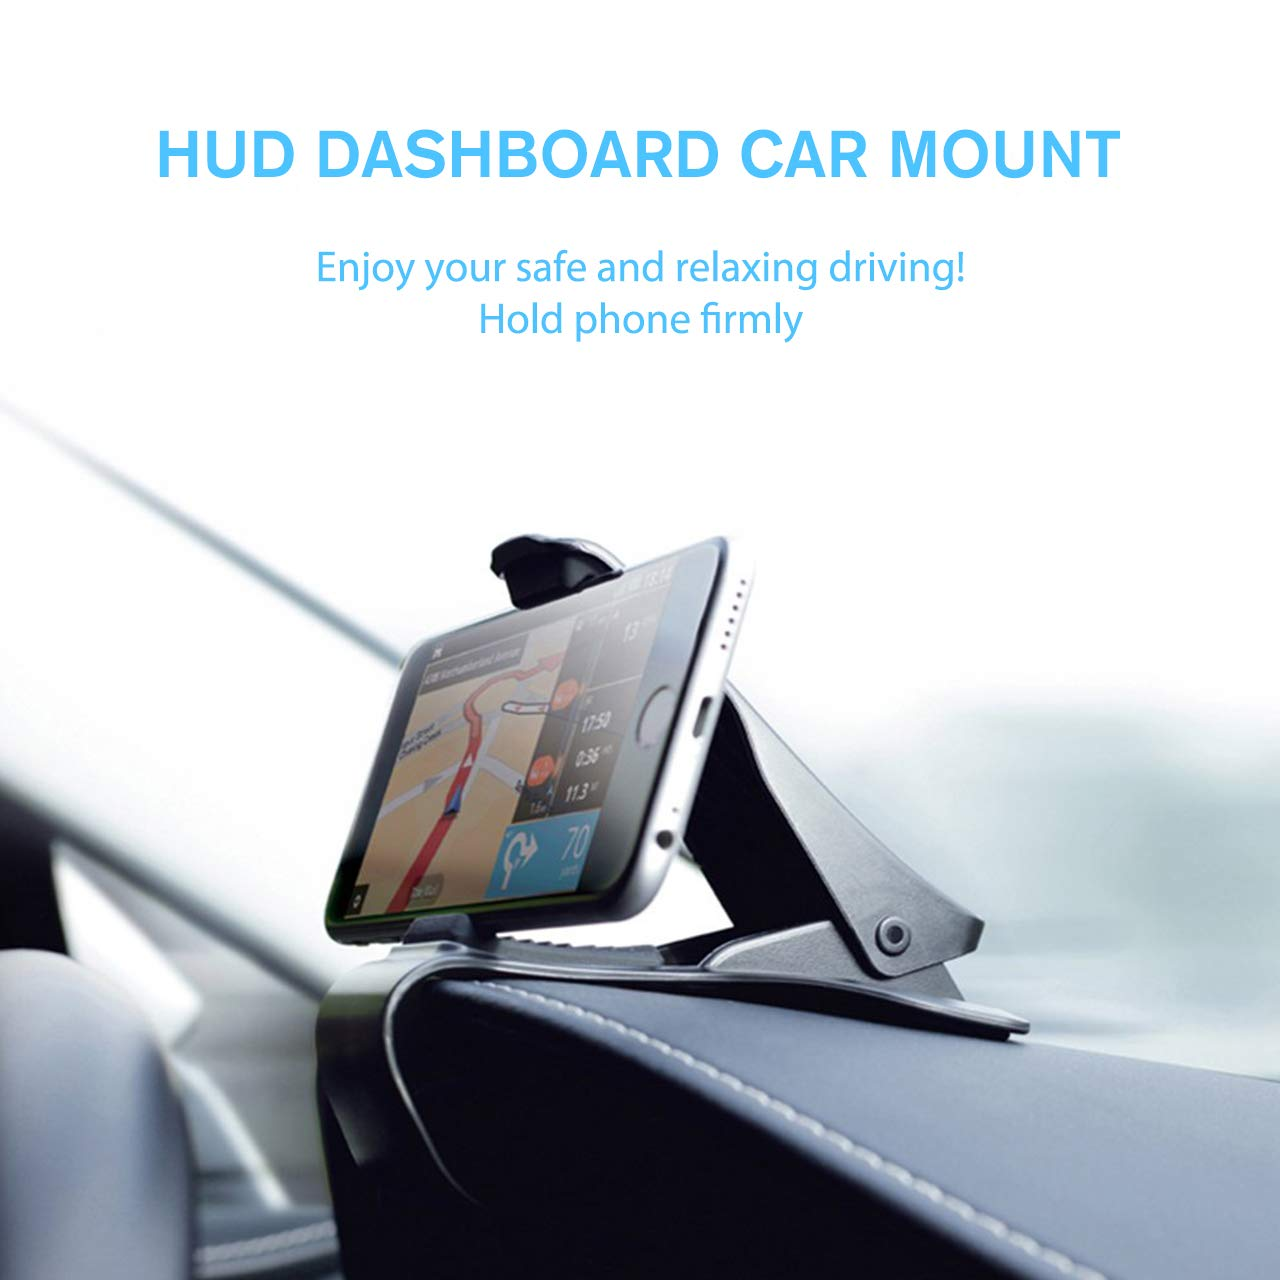 8 7 8 Plus 7 Plus Note 9 Edge and More Car Phone Holder Clamp Arm Car Mount Dashboard Mobile Clip Stand HUD Design Compatible for iPhone Xs,X Samsung Galaxy S9,S8 S7 3.0-6.5inch S8 Plus